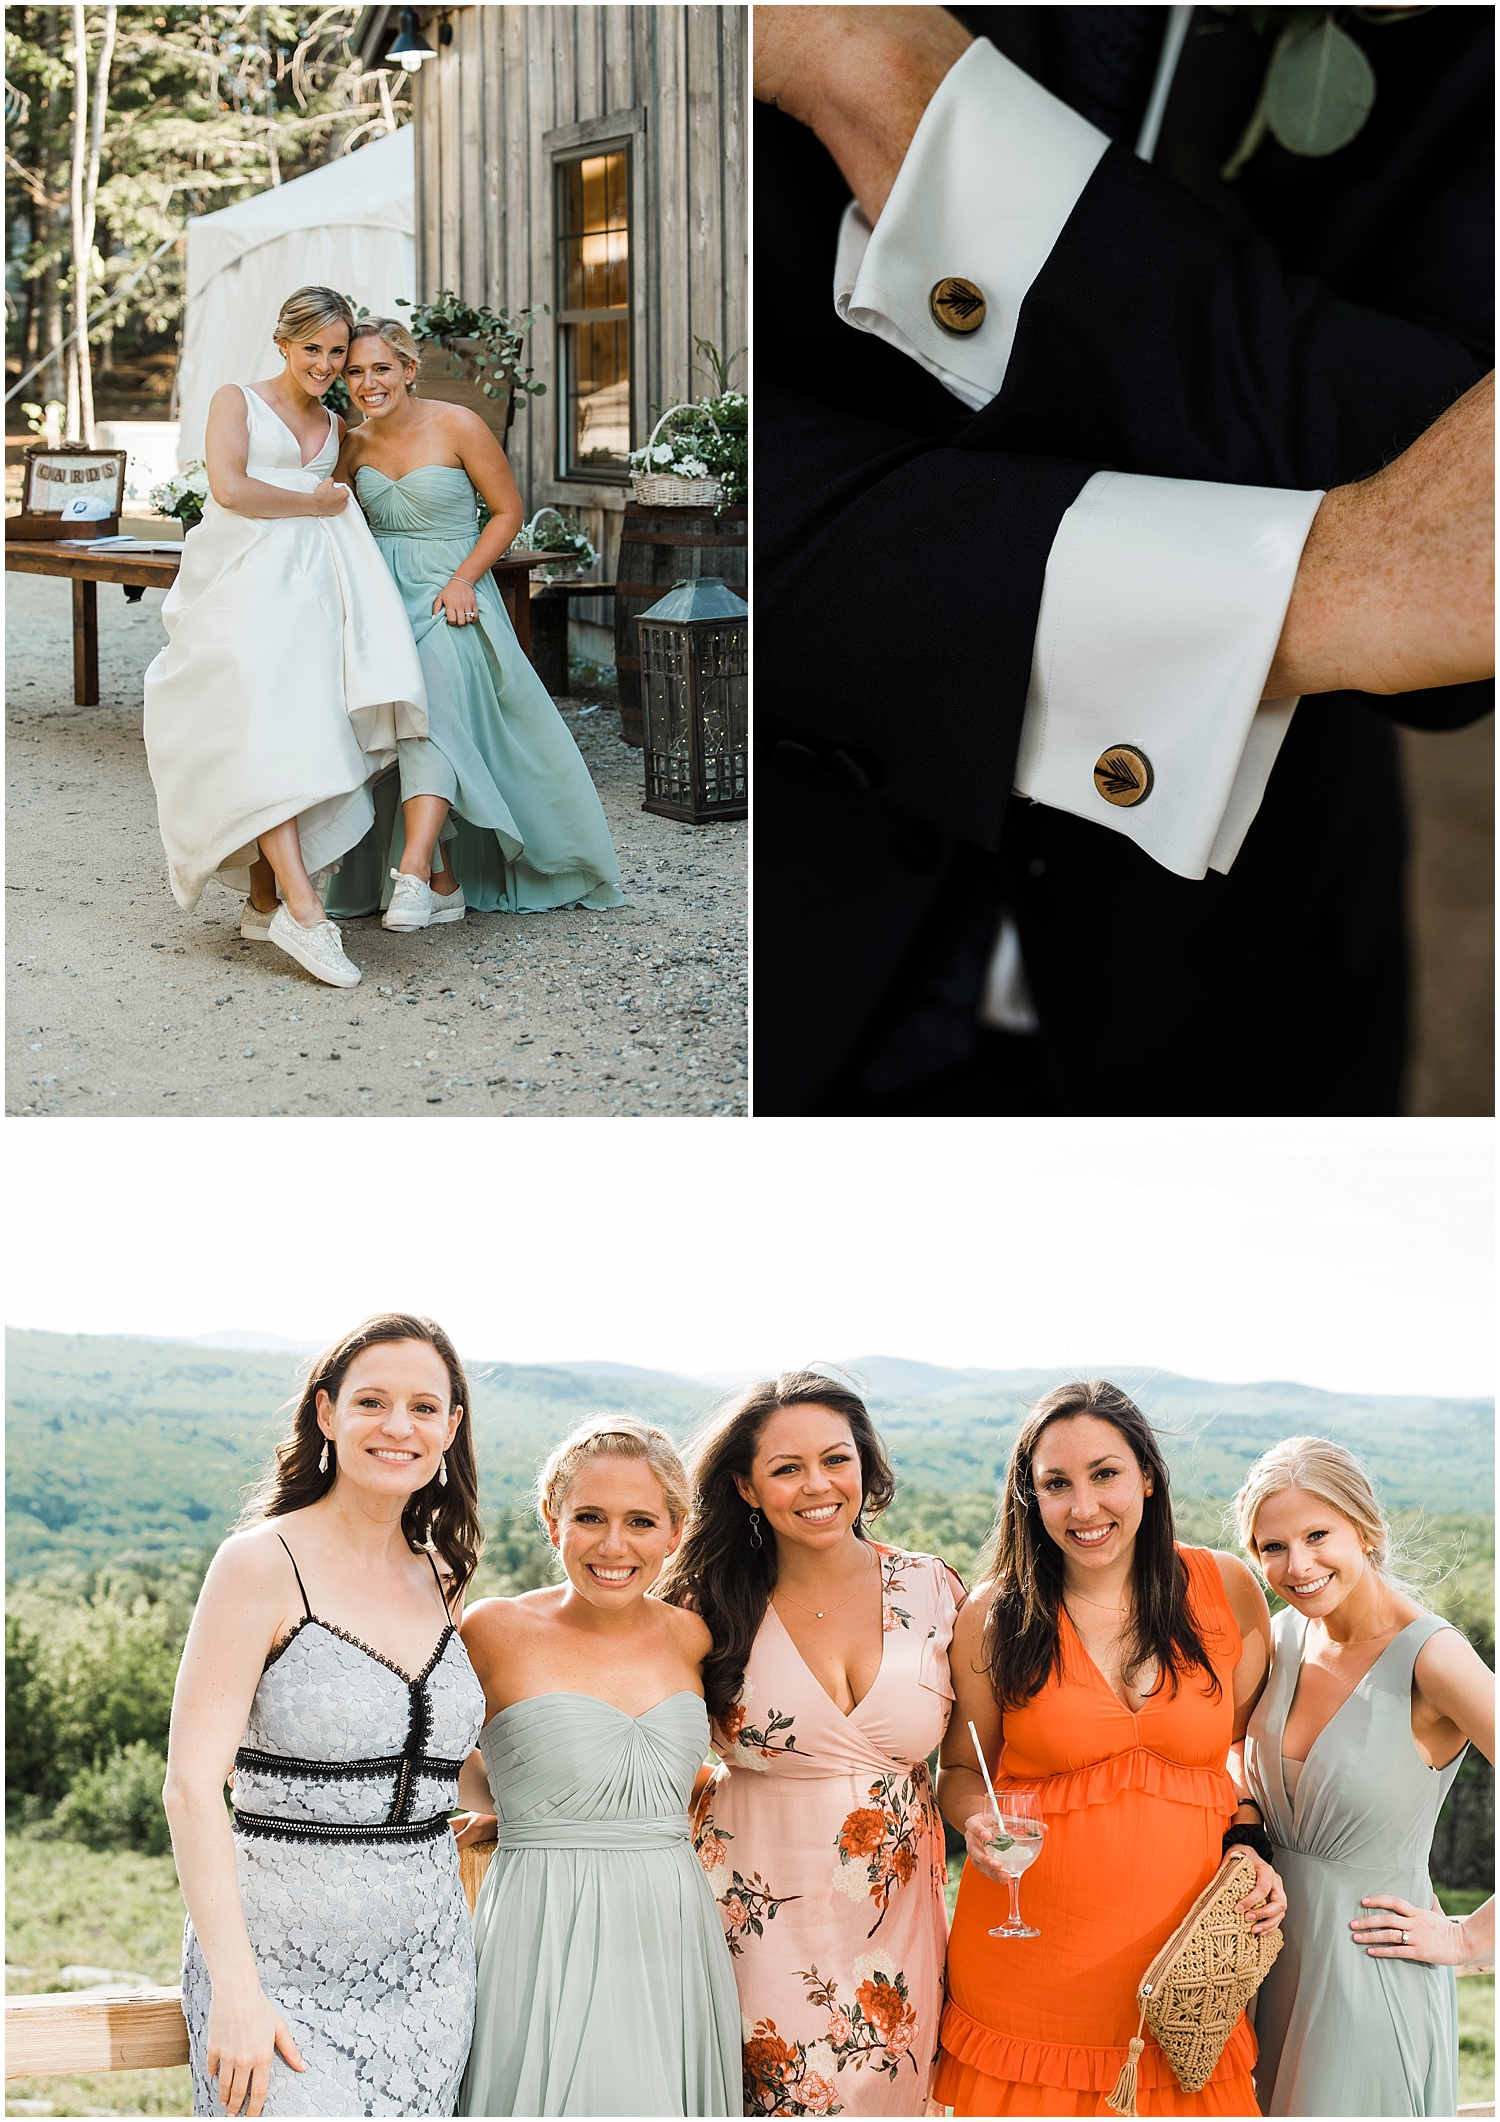 Apollo_Fields_Granite_Ridge_Estate_And_Barn_Wedding_038.jpg